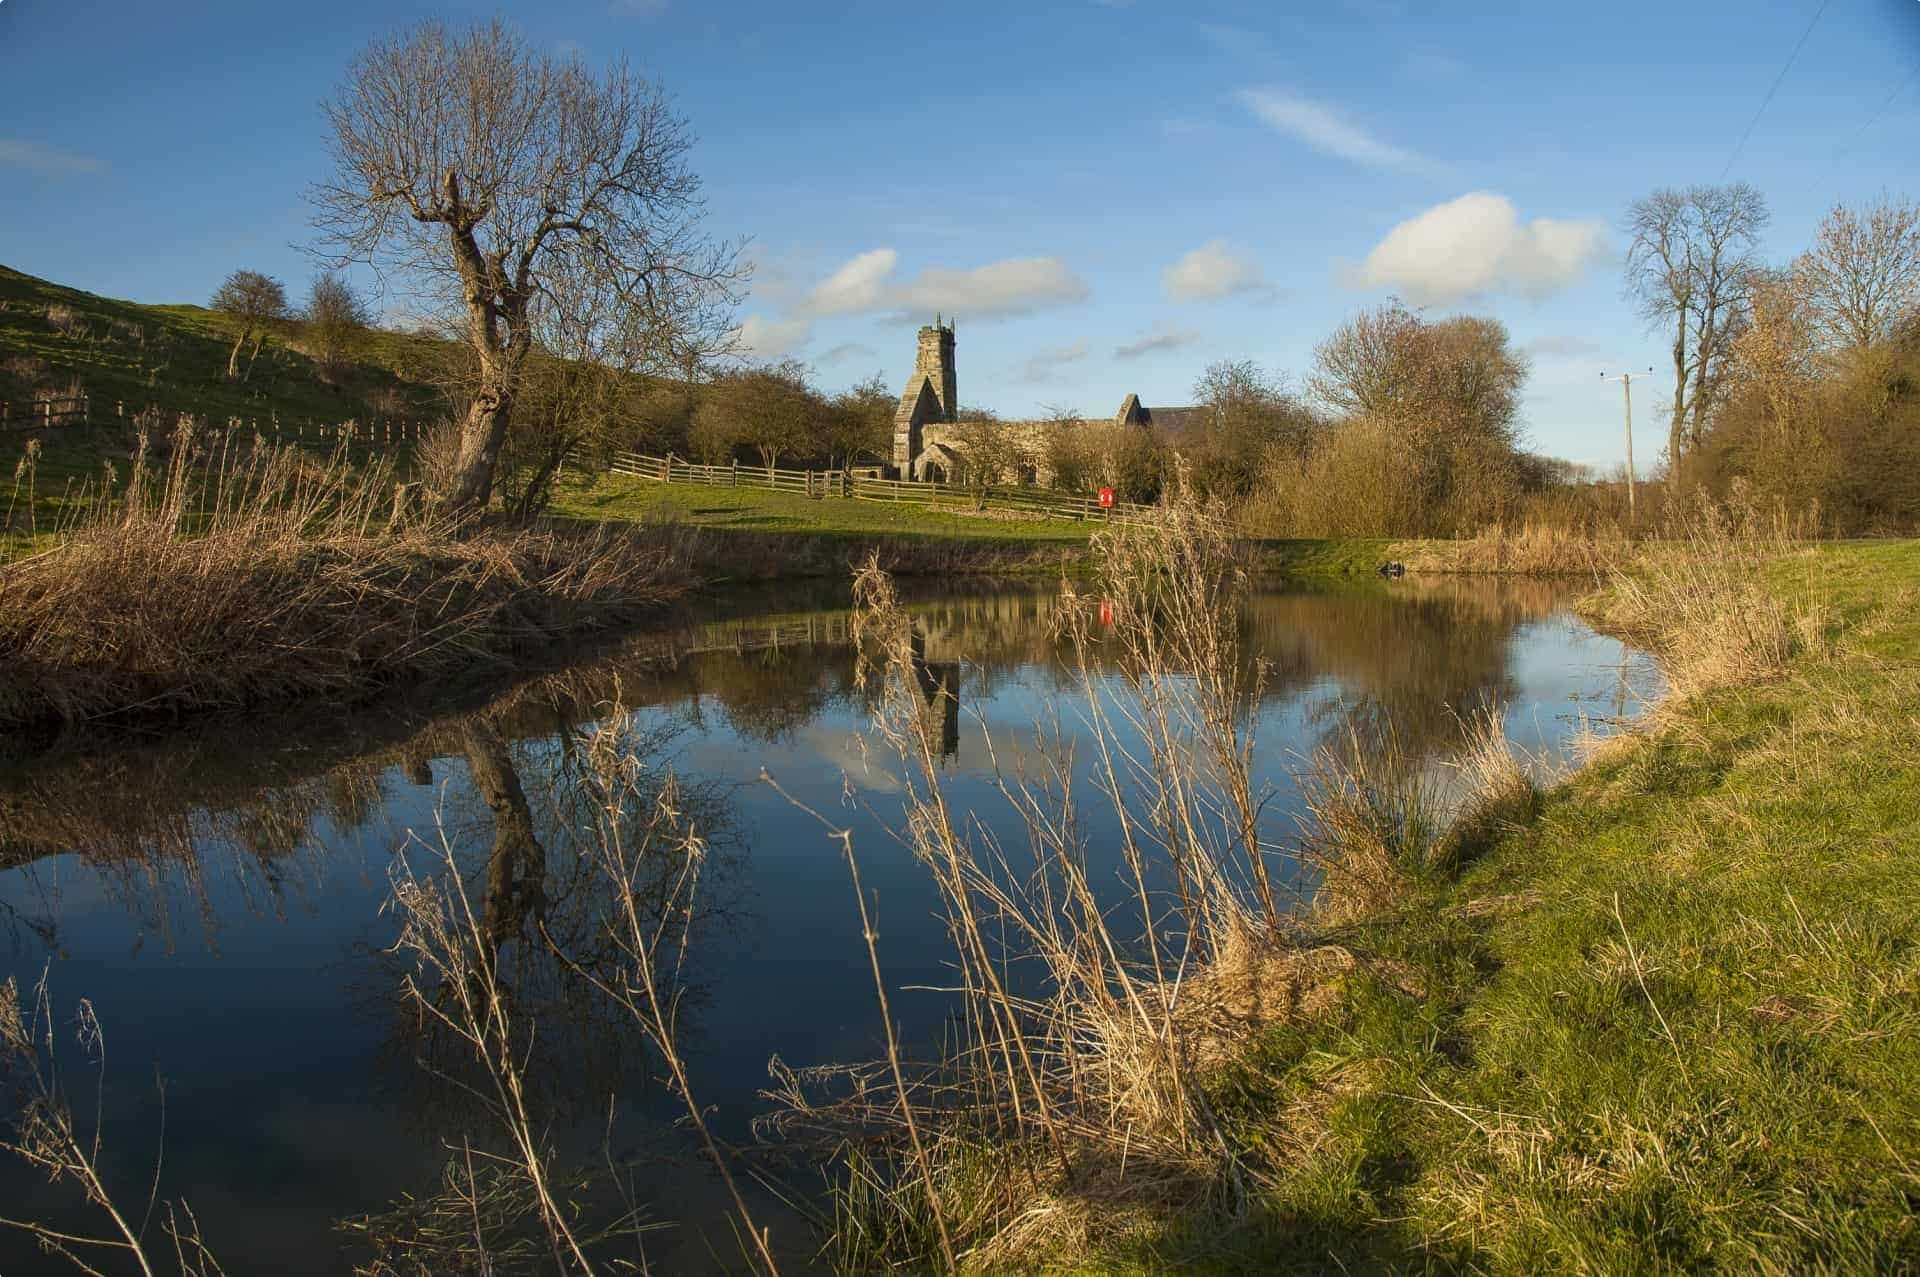 The medieval village of Wharram Percy